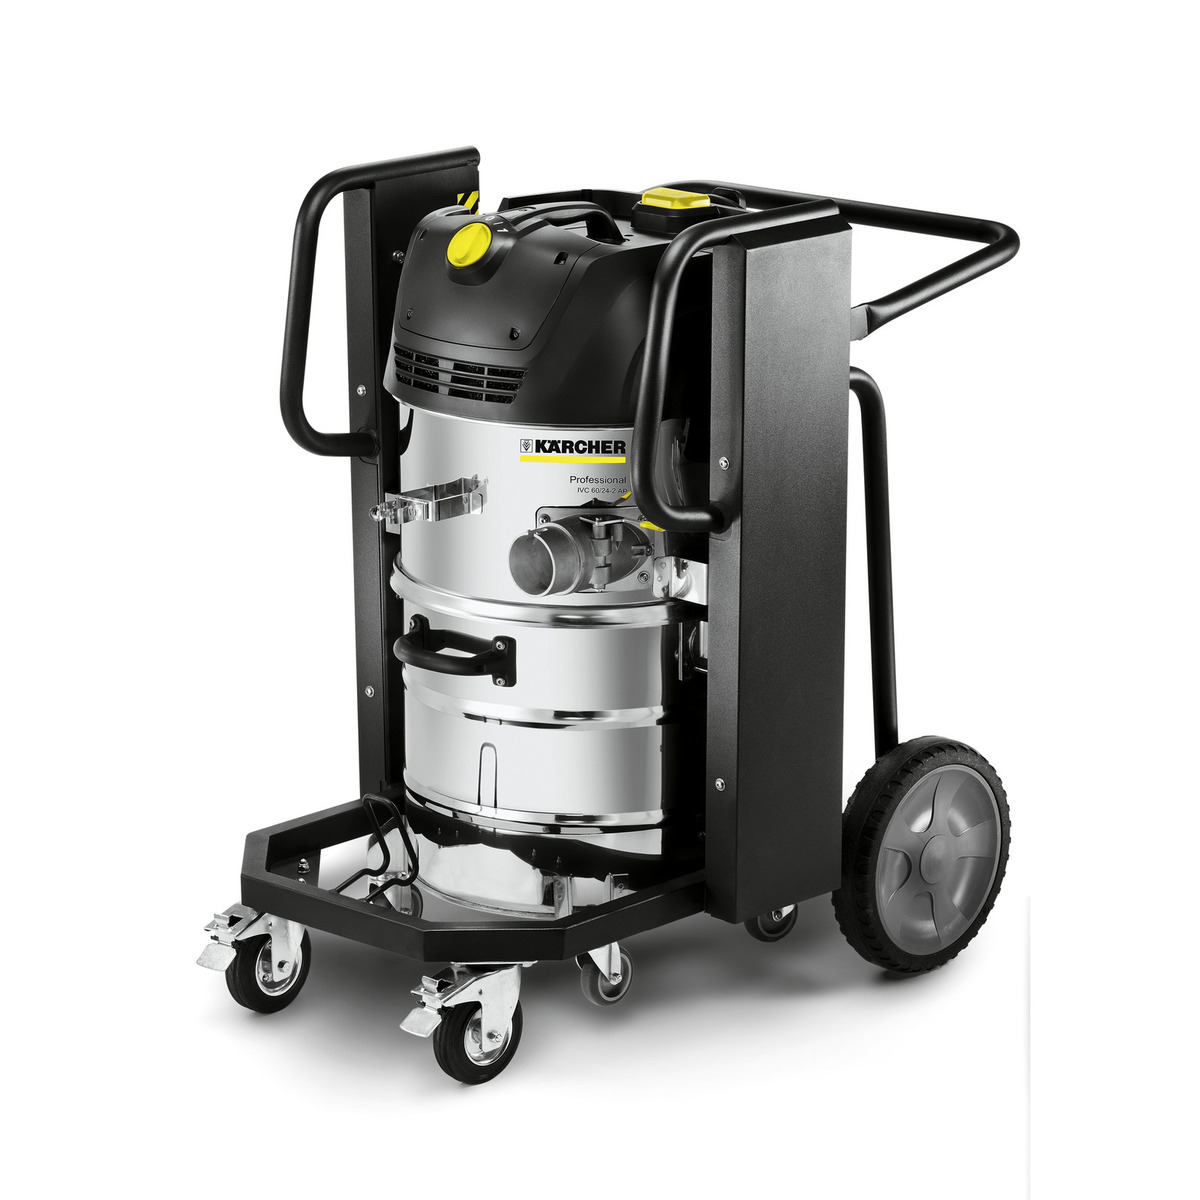 Karcher Compact Industrial Wet & Dry Vacuum Cleaner IVC60/24-2